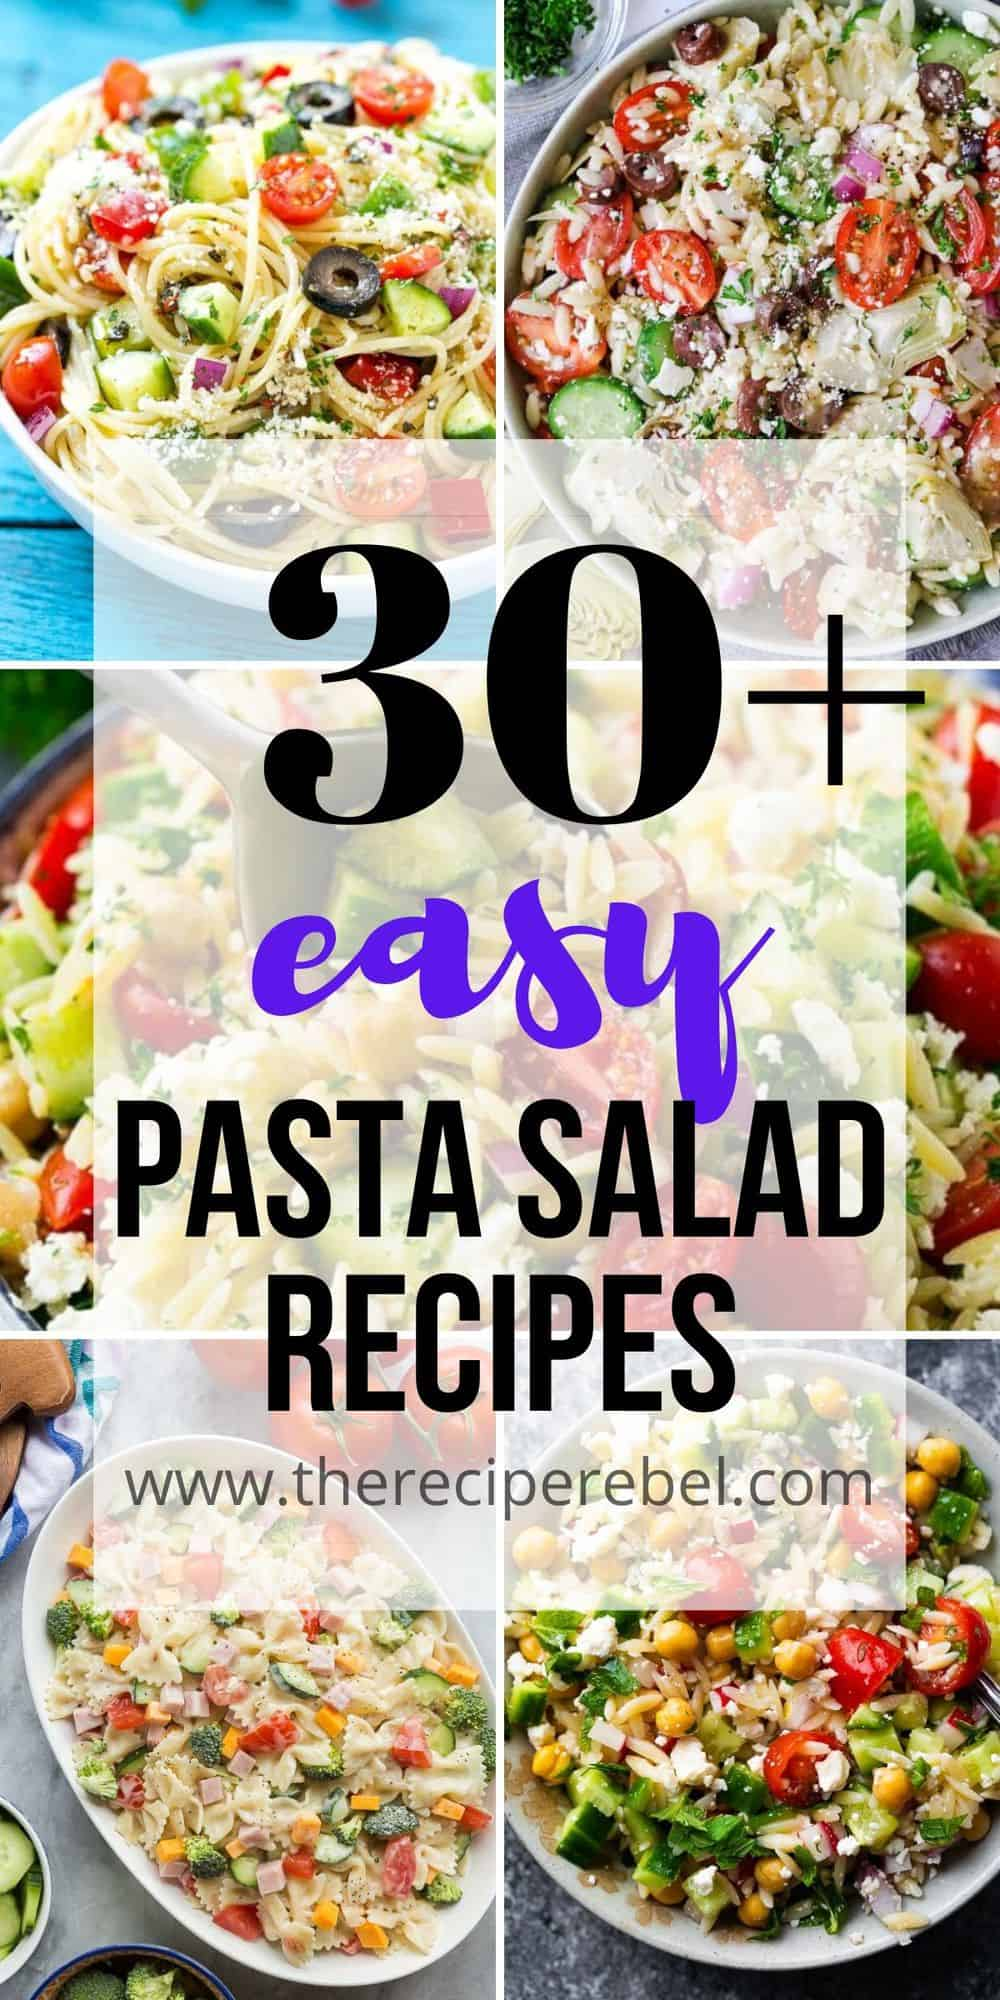 pasta salad recipes collage long with 5 pasta salad images and title